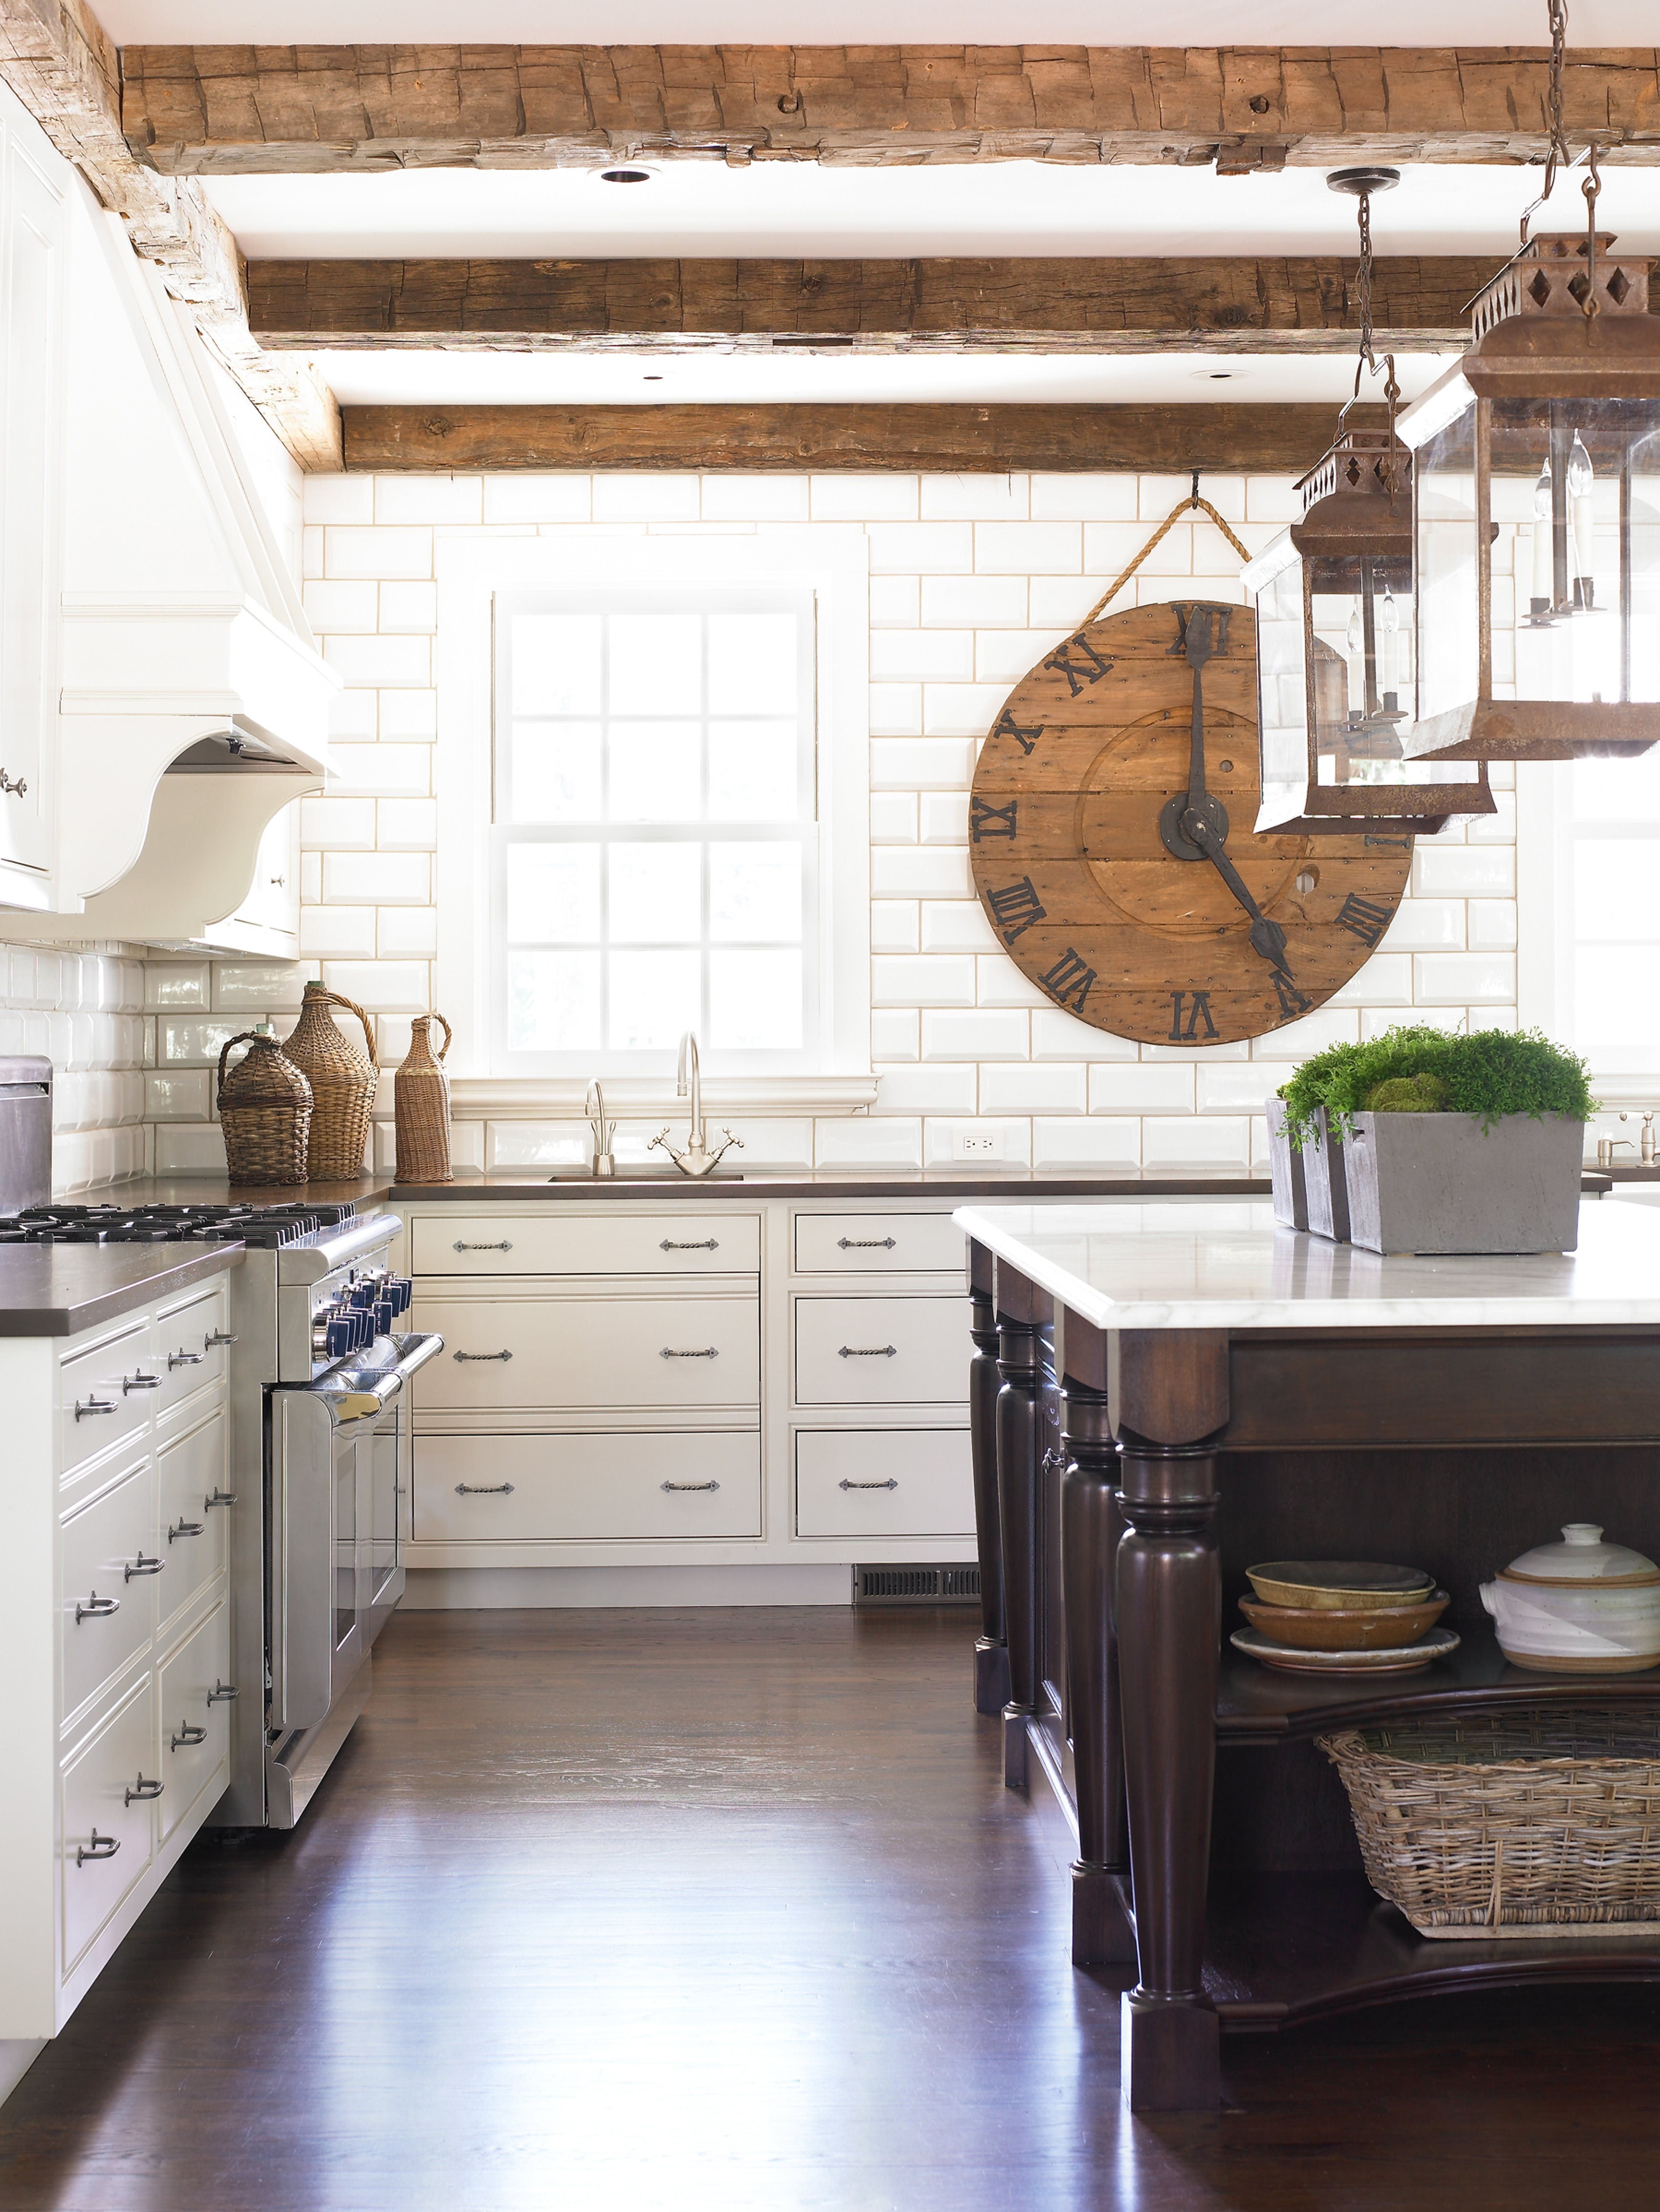 Kitchen Ceiling Fans Cool And Classic Design Of Ceiling Fans In 2020 Tuscan Kitchen Rustic Kitchen Ceiling Fan In Kitchen